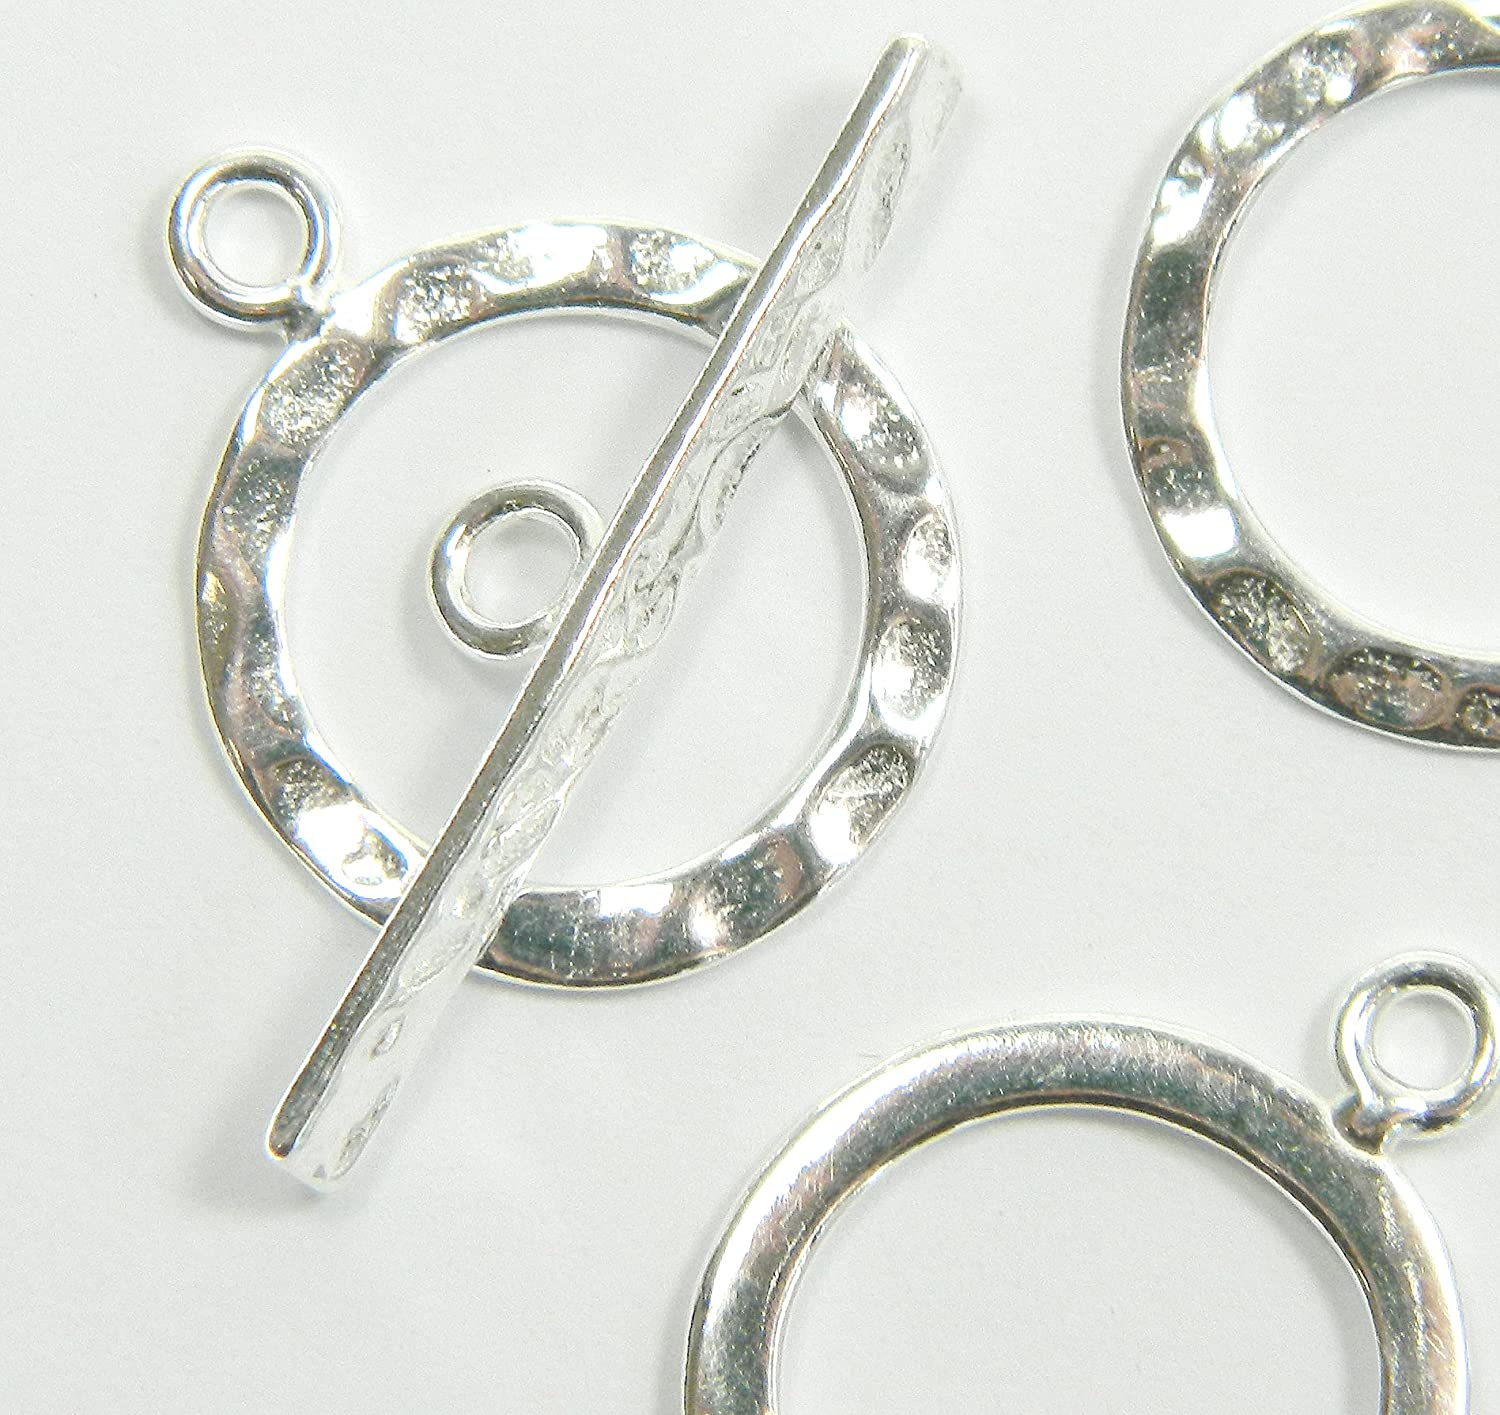 New 14mm Ring with 24mm Bar 925 Sterling Silver Hammered Toggle Clasp 1 Set